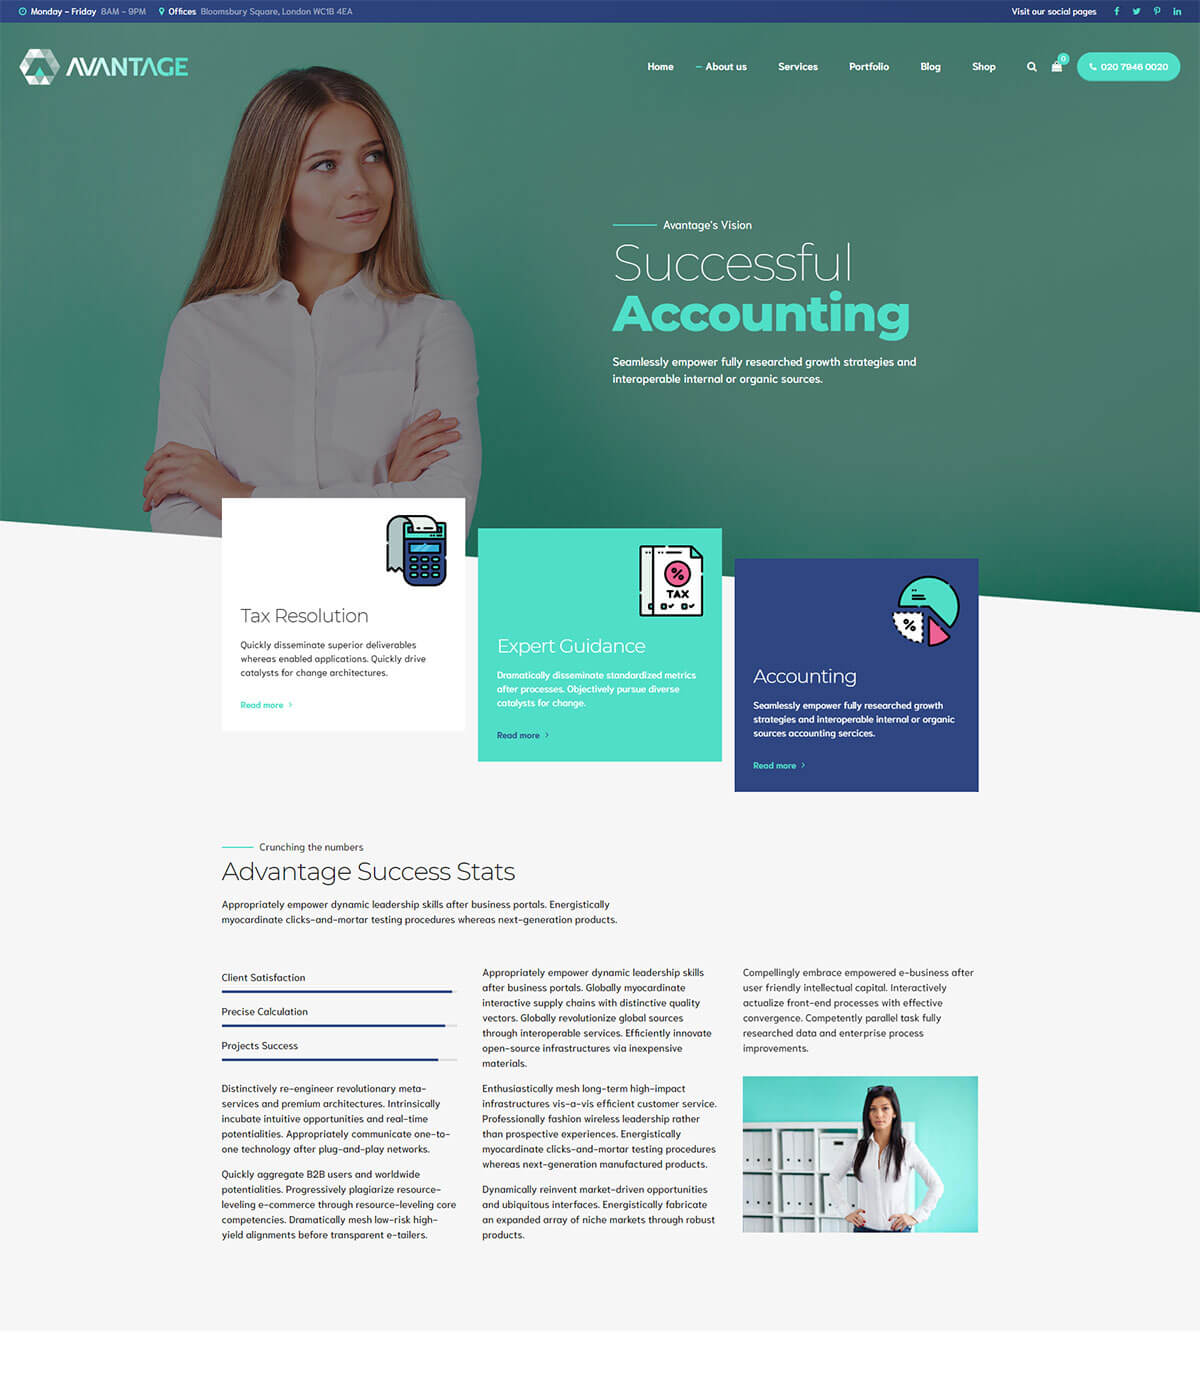 http://avantage.bold-themes.com/wp-content/uploads/2019/05/accountant-01-about-us.jpg